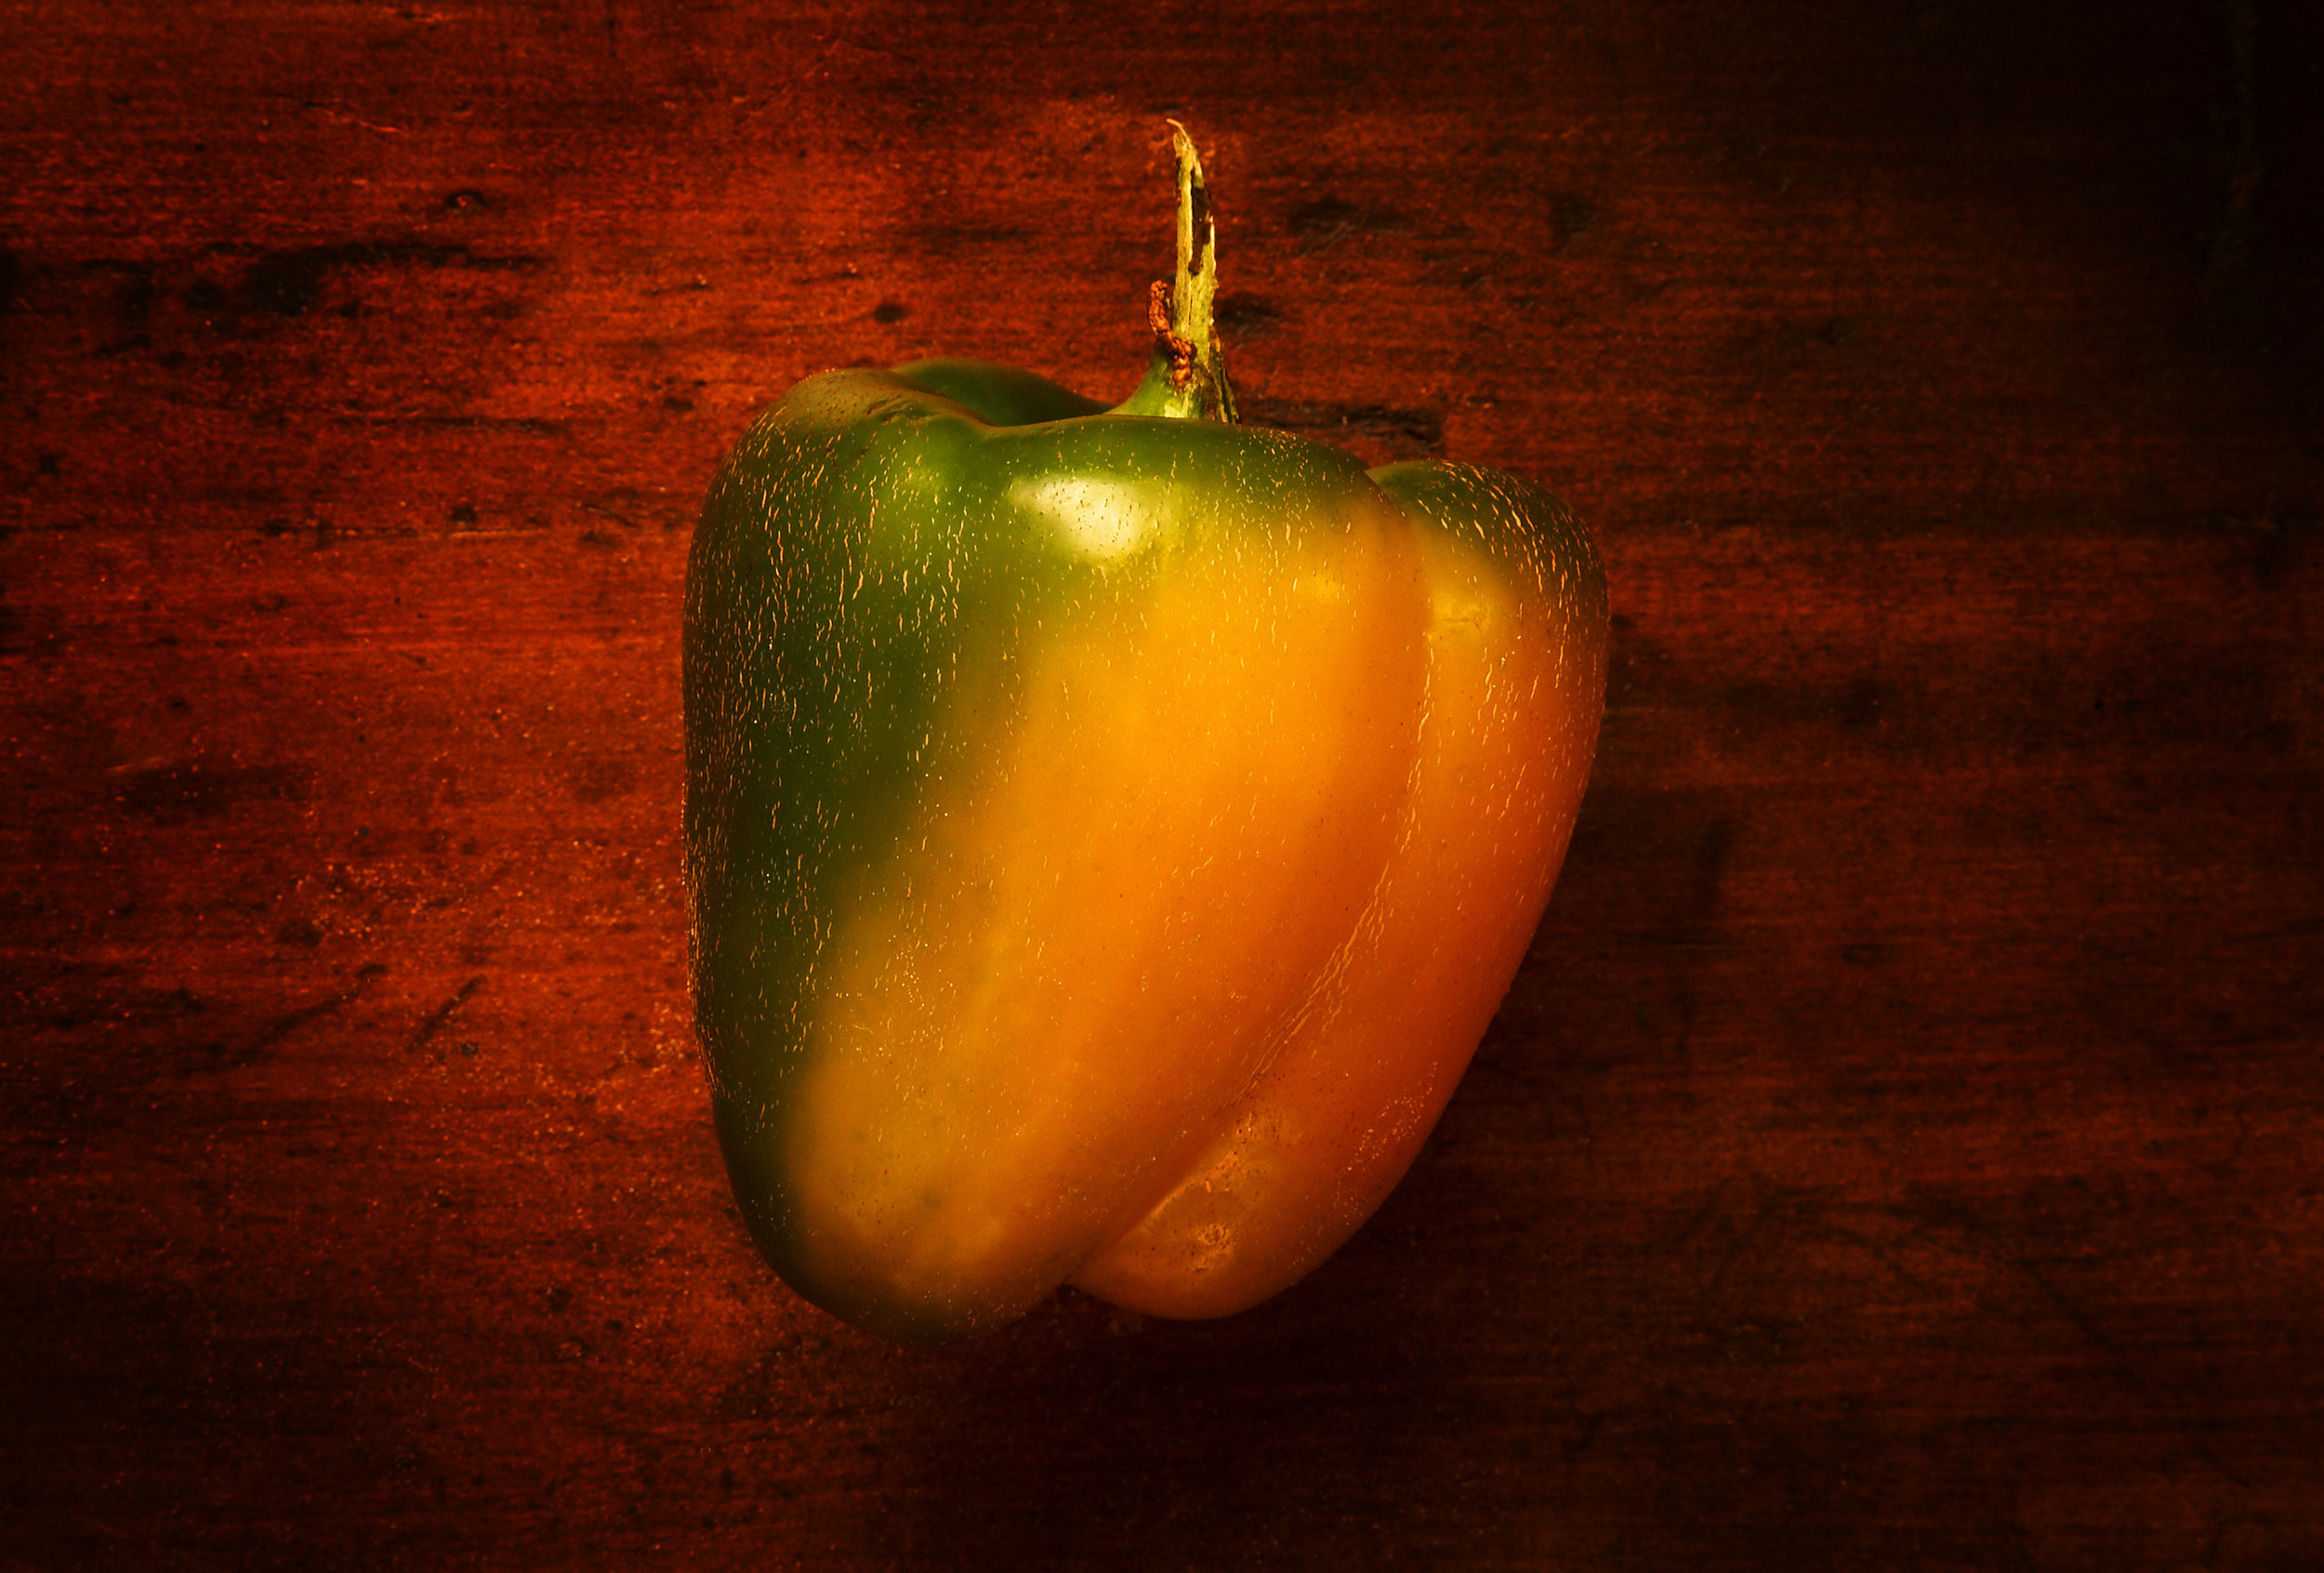 PEPPER-BELL-YELLOW-GREEN-ORGANIC-VEGETABLE-ON-WOOD-©-JONATHAN-R.-BECKERMAN-PHOTOGRAPHY.jpg